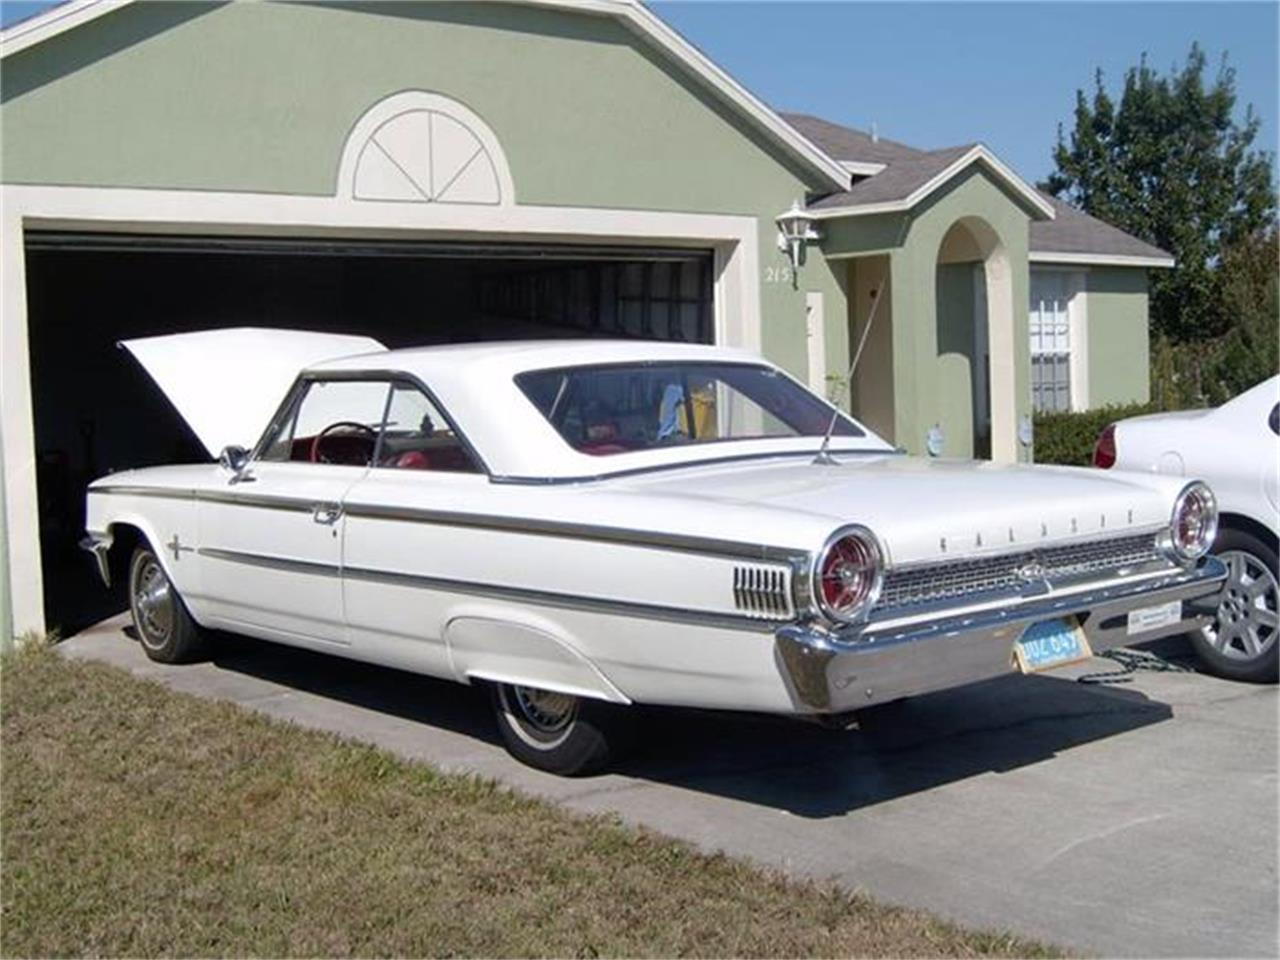 Large Picture of '63 Ford Galaxie 500 XL located in Orlando Florida Offered by a Private Seller - AYA8